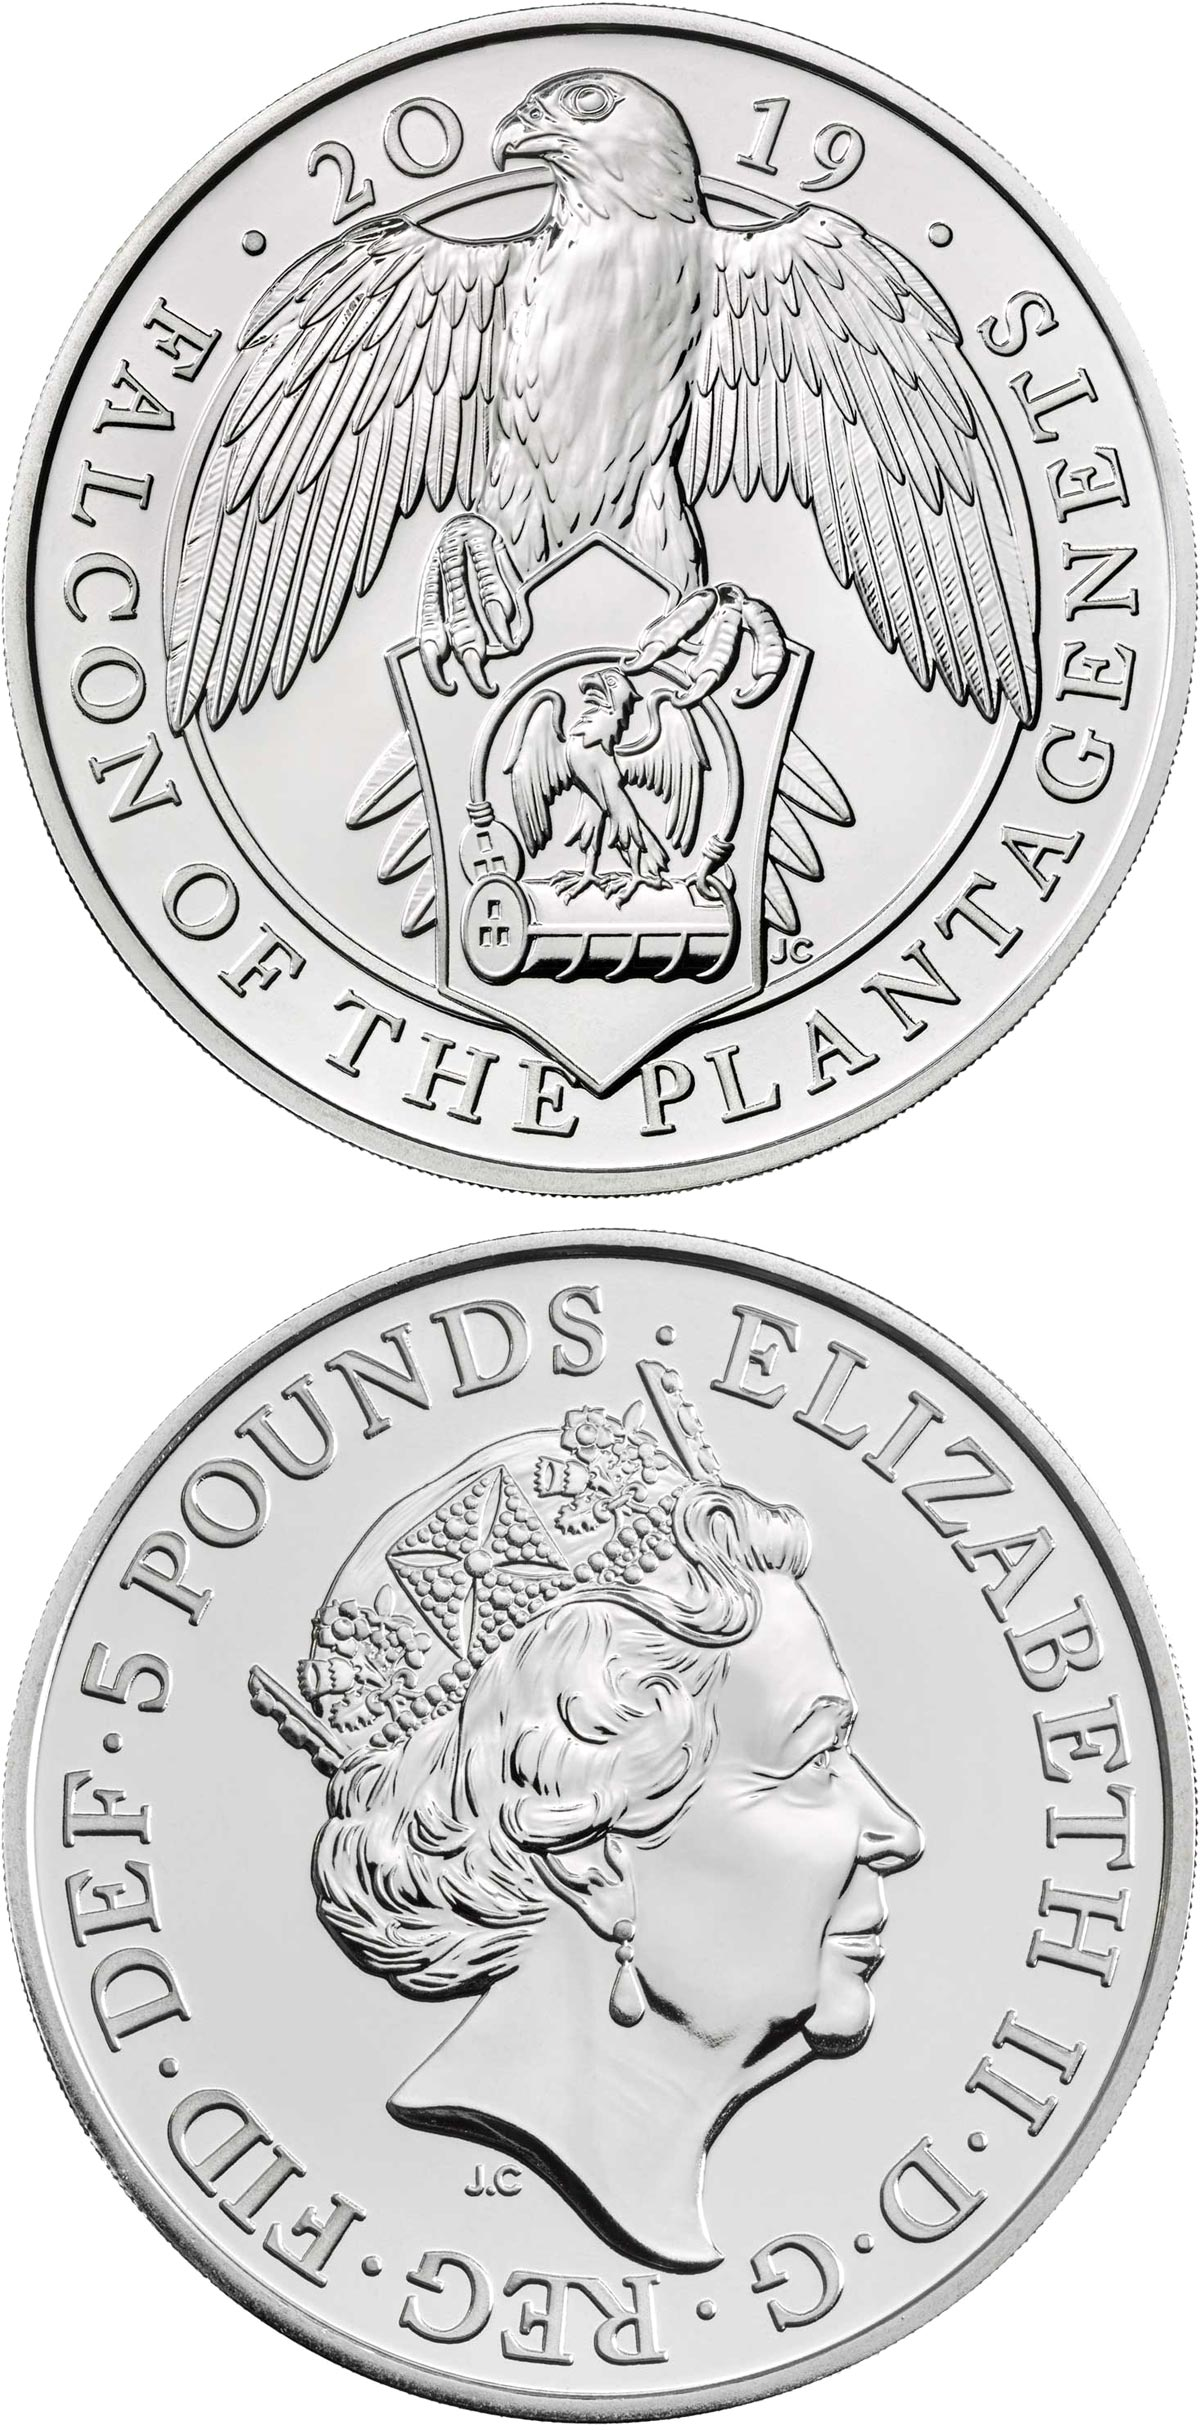 Image of 5 pounds coin – The Falcon of the Plantagenets | United Kingdom 2019.  The Copper–Nickel (CuNi) coin is of BU quality.